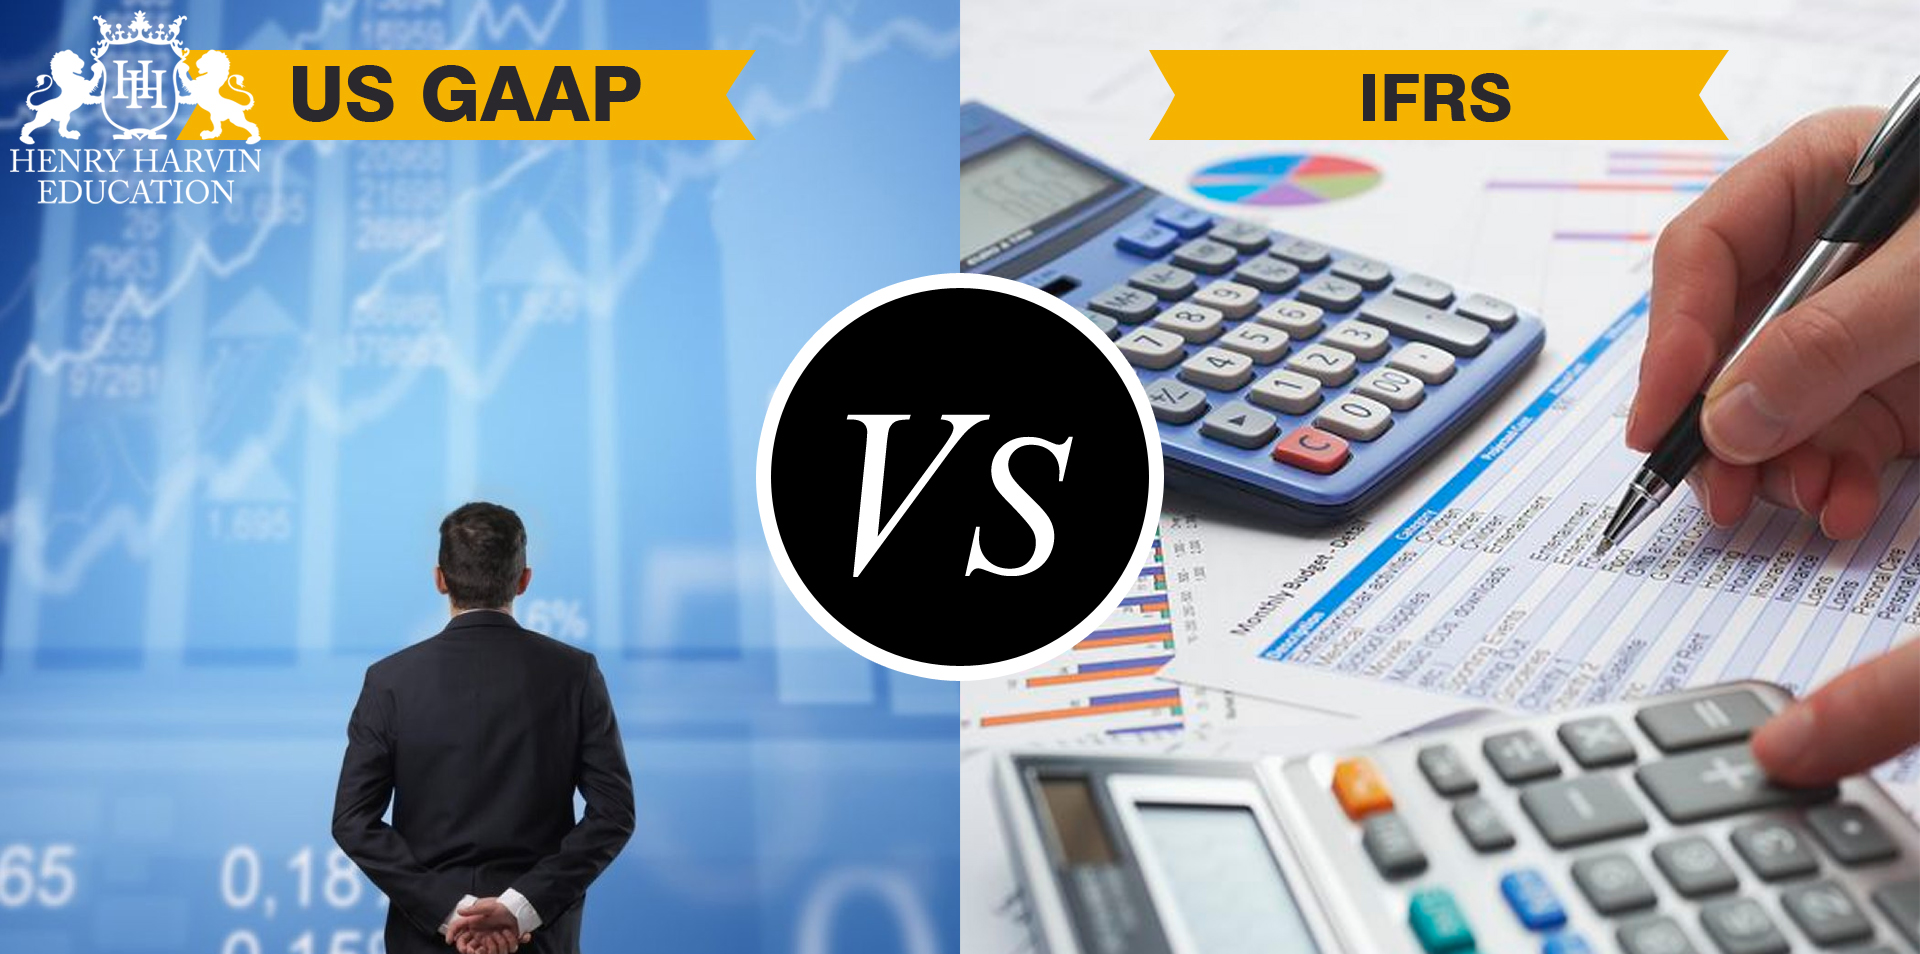 Difference between IFRS and GAAP